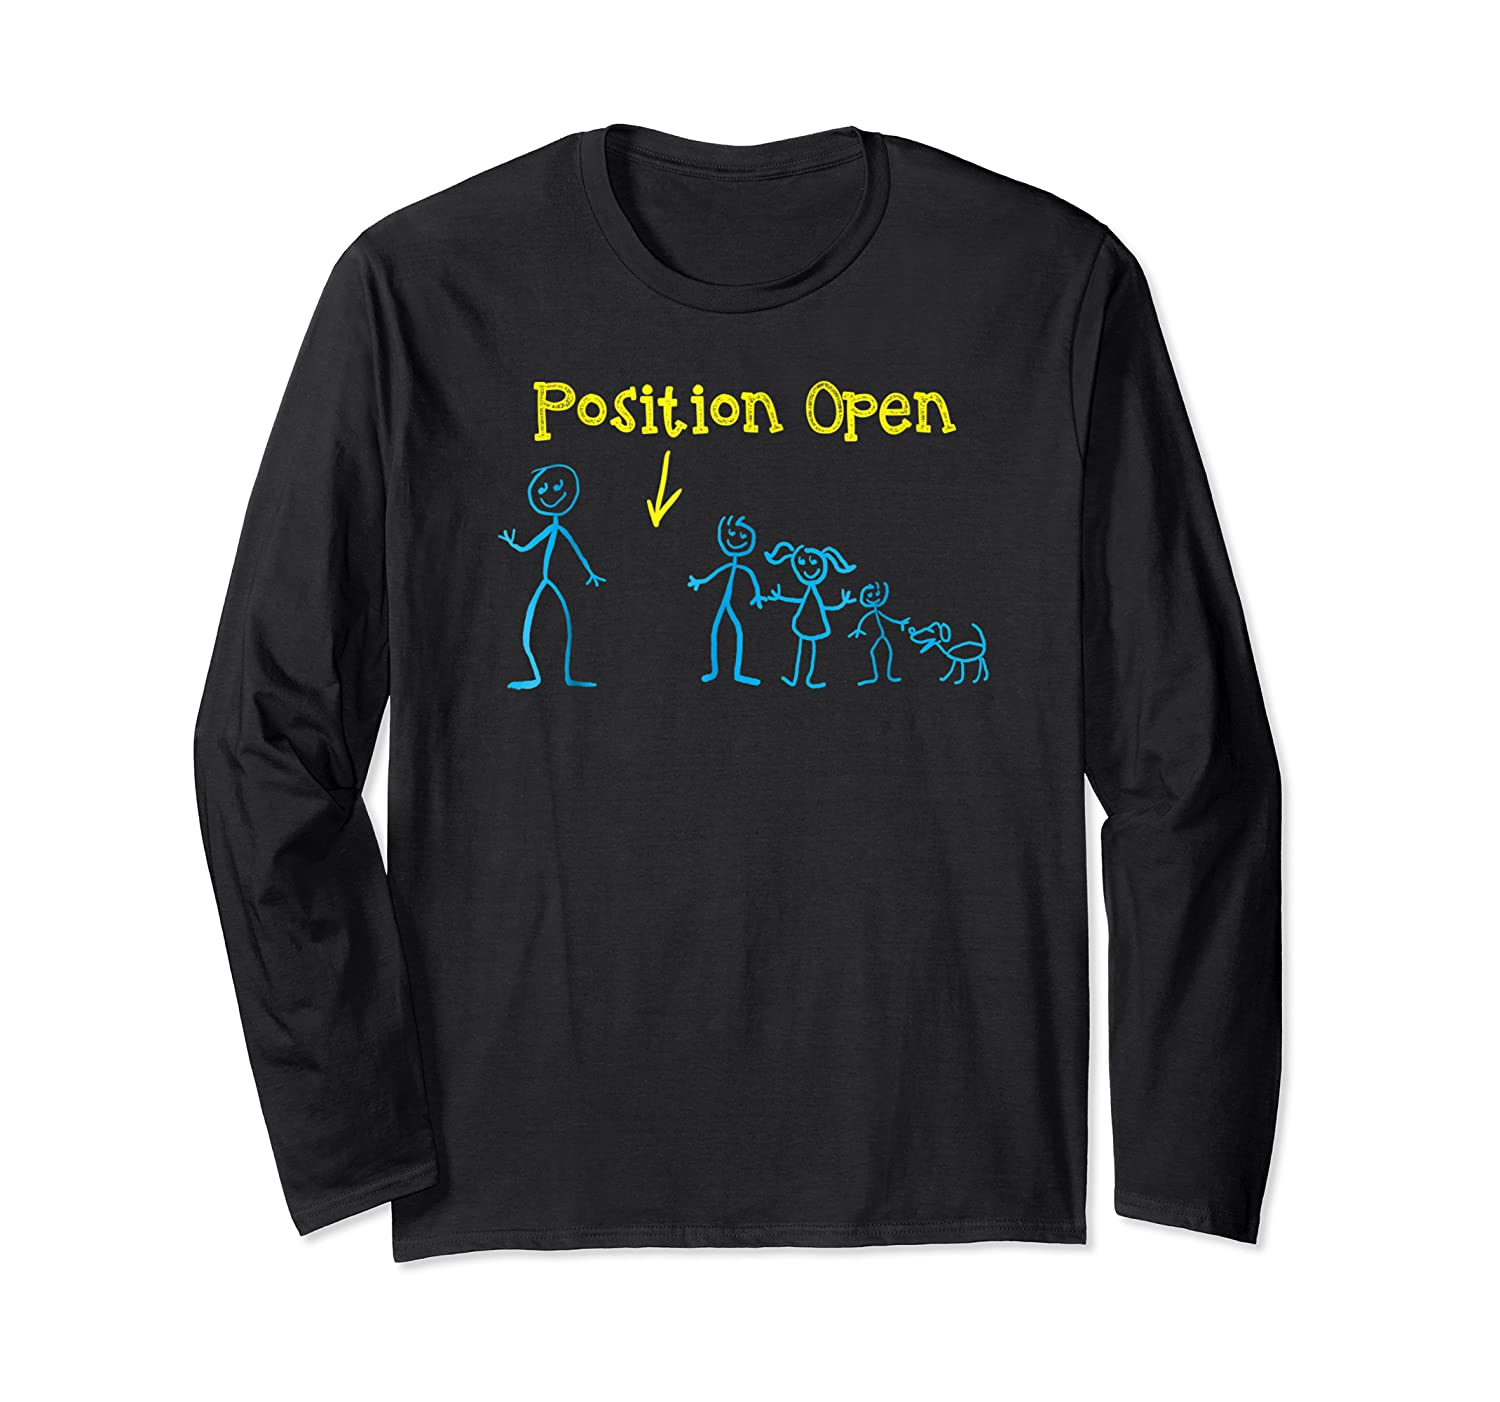 S Funny Single Dad T Shirt Position Open By Zany Brainy Long Sleeve T-shirt